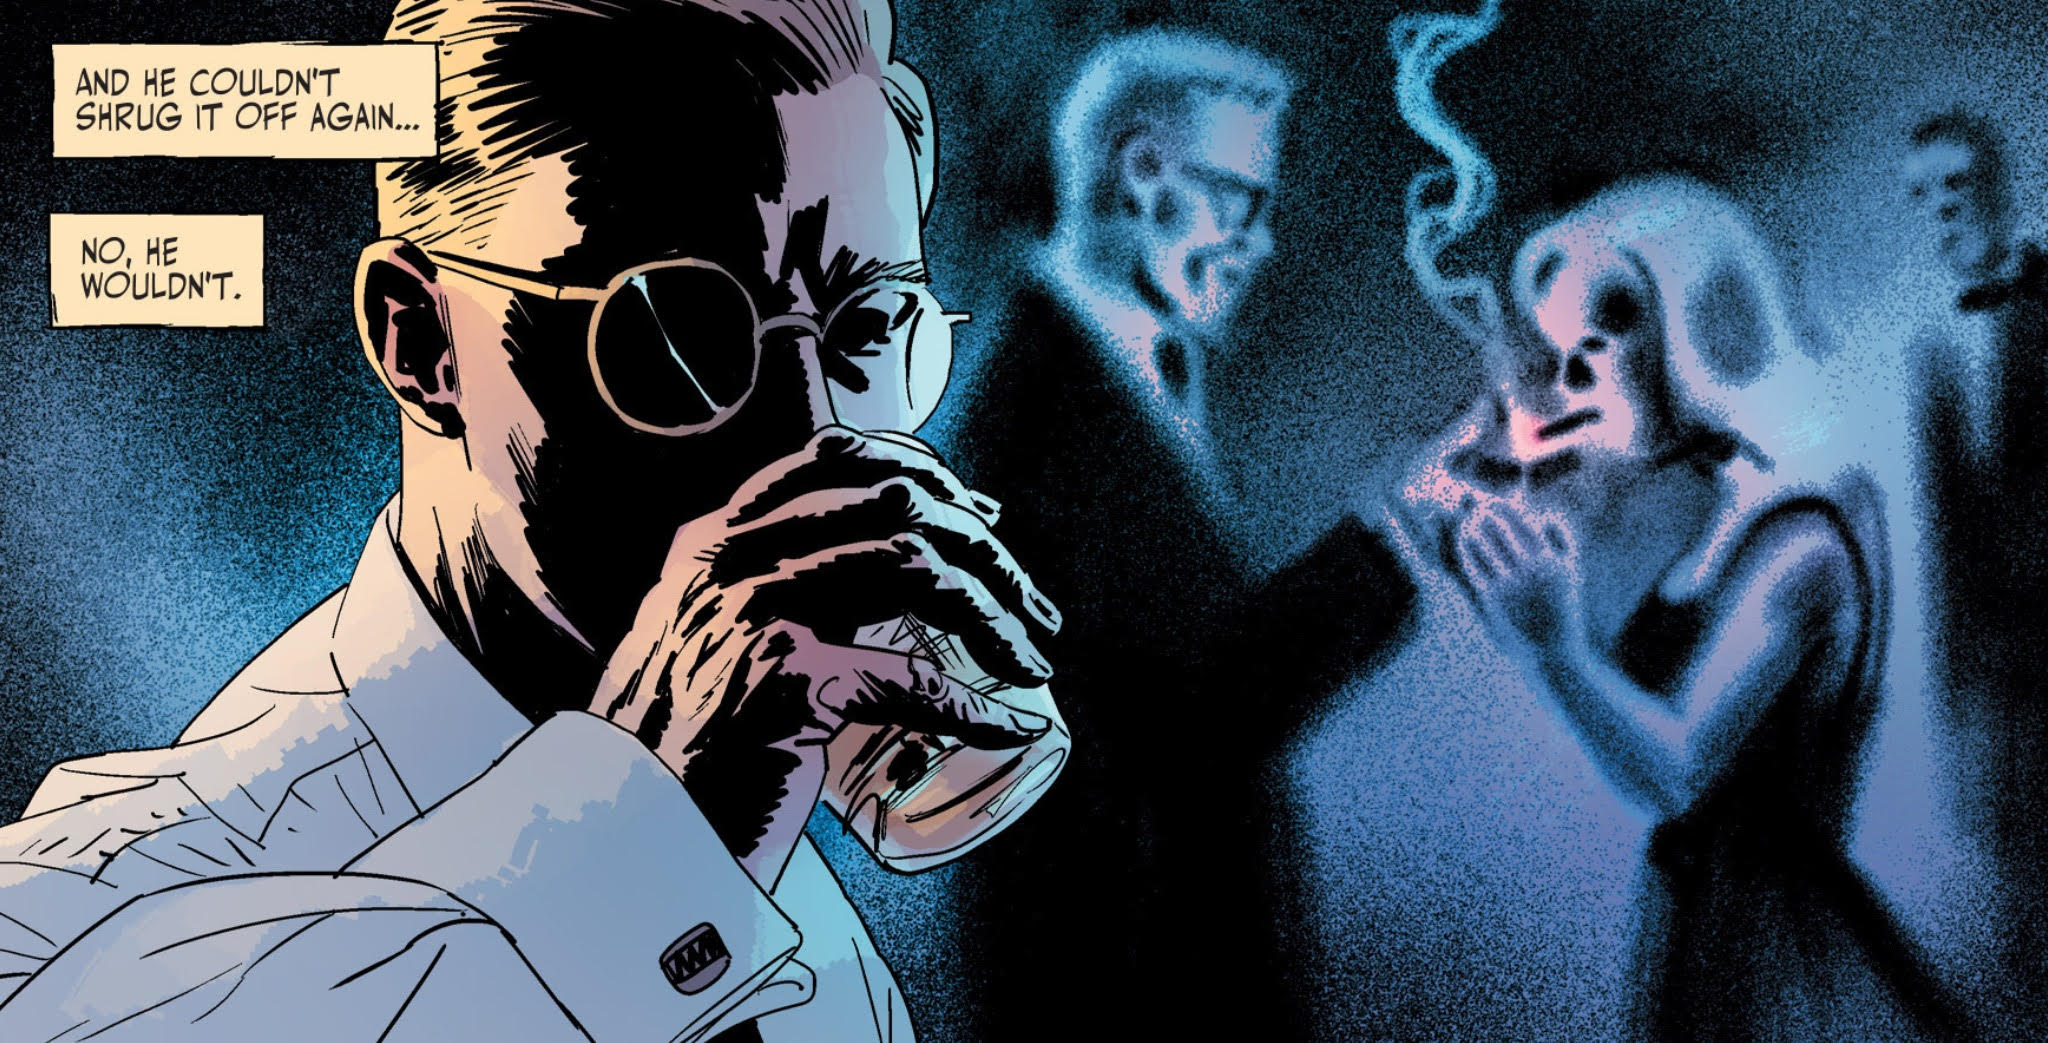 13 Best Comics of 2015 - The Fade Out